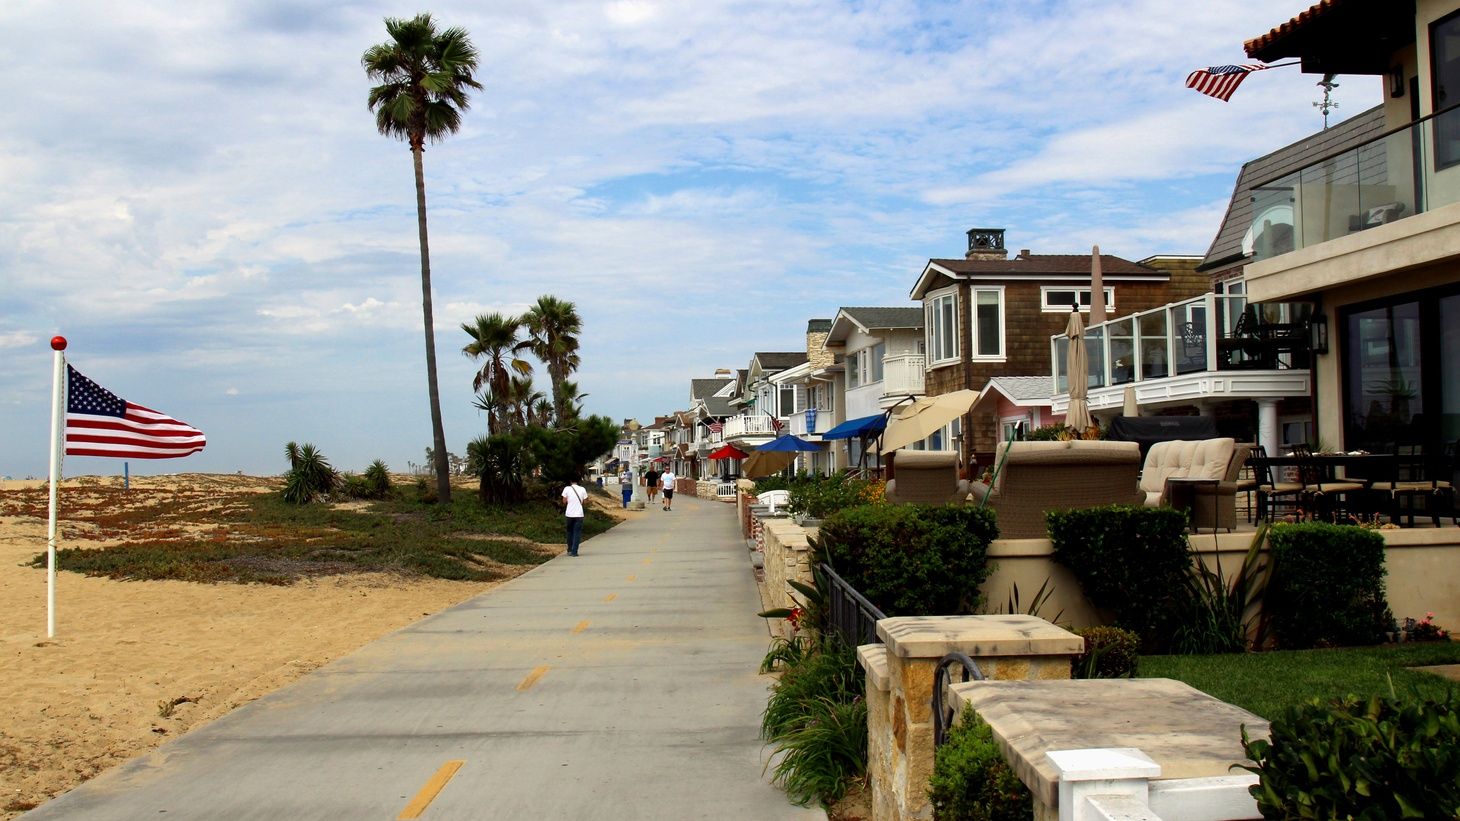 Ocean-front beach houses for rent, Balboa Island, California.